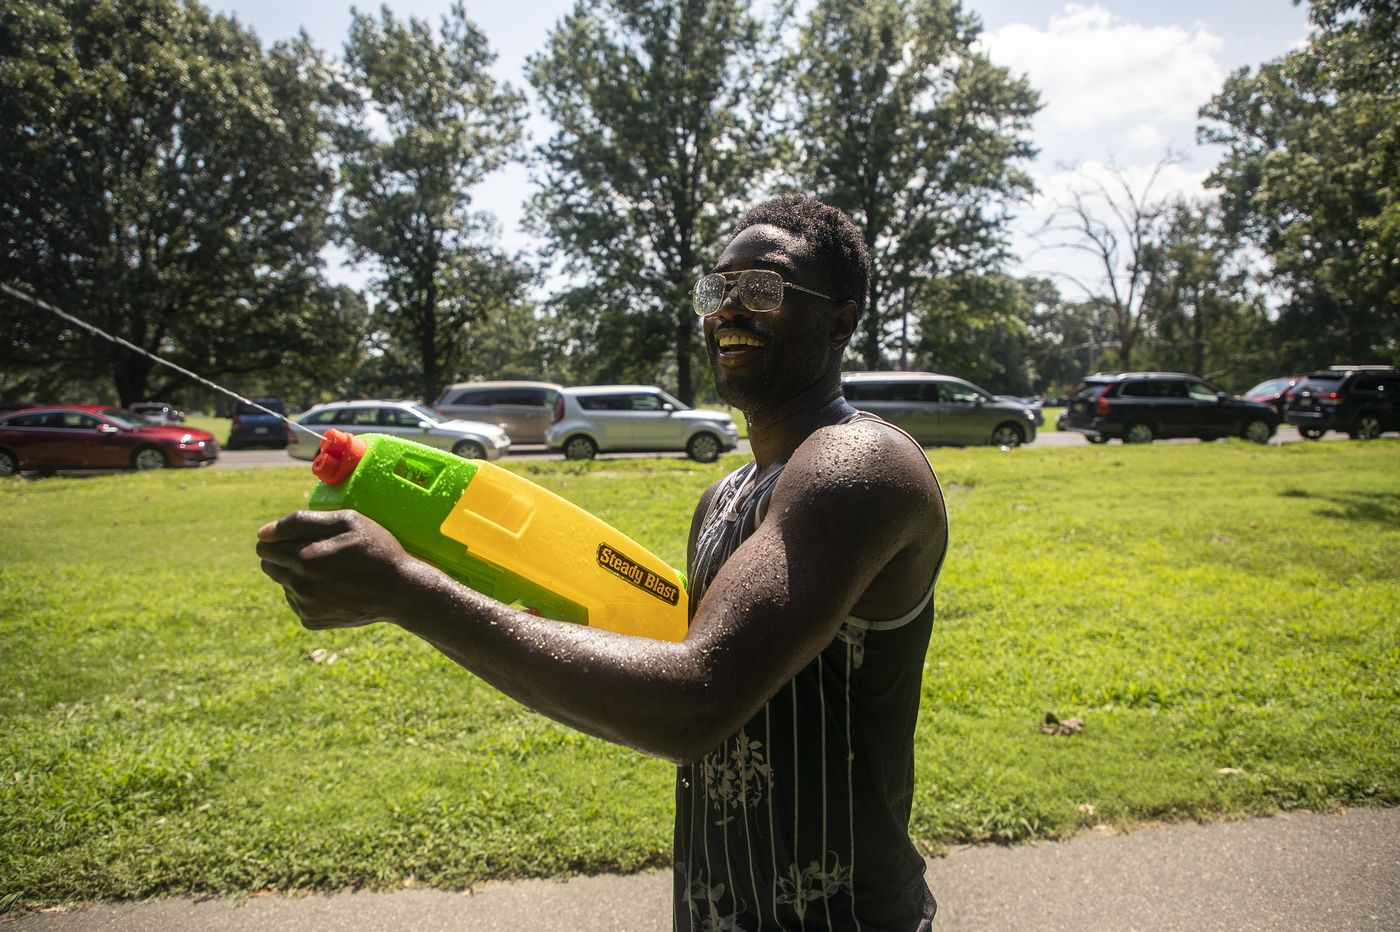 He's fighting urban heat — and violence — with Super Soakers